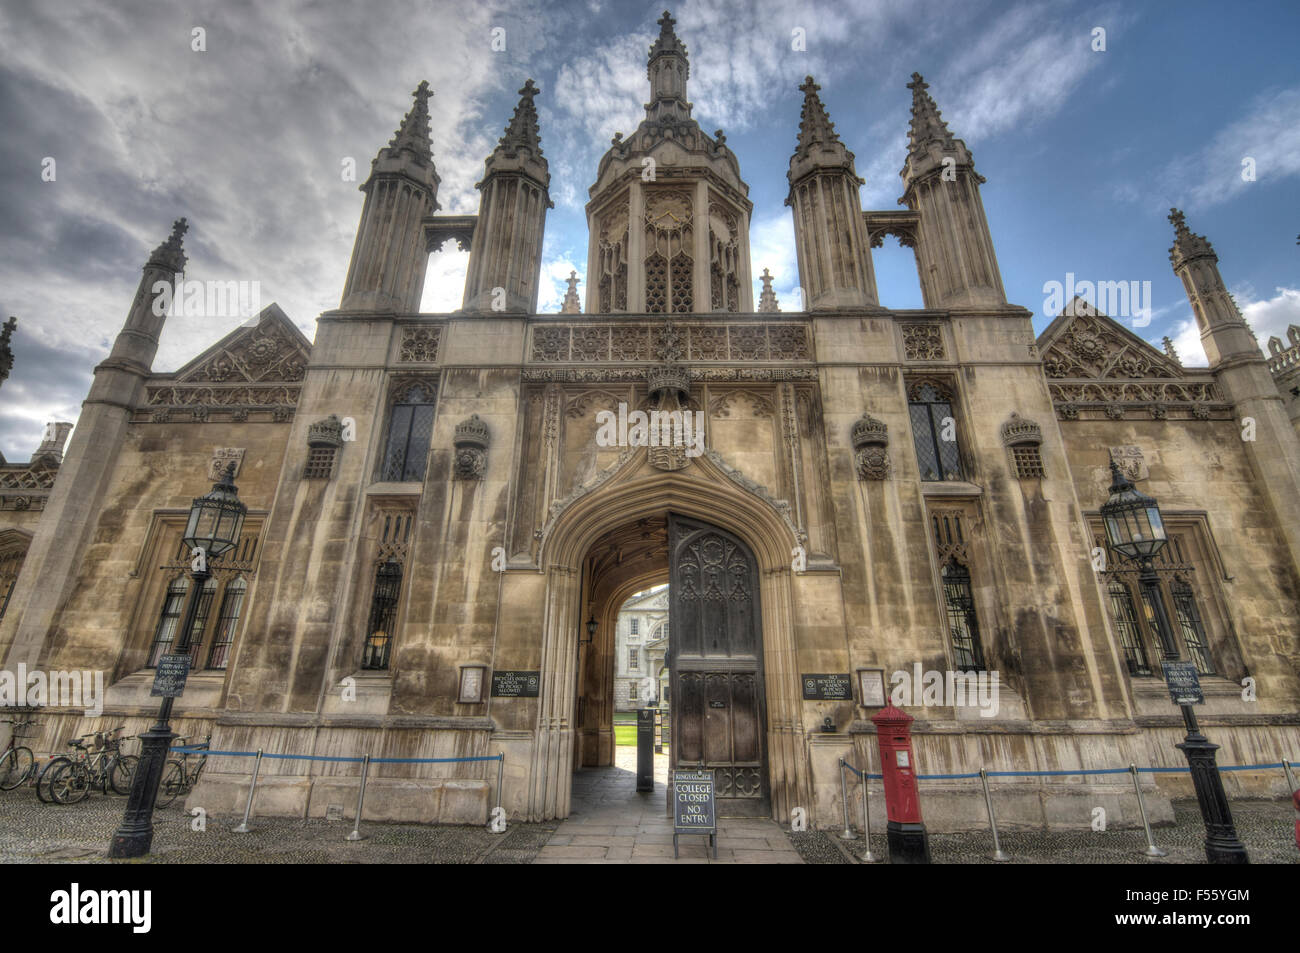 king's college Cambridge - Stock Image